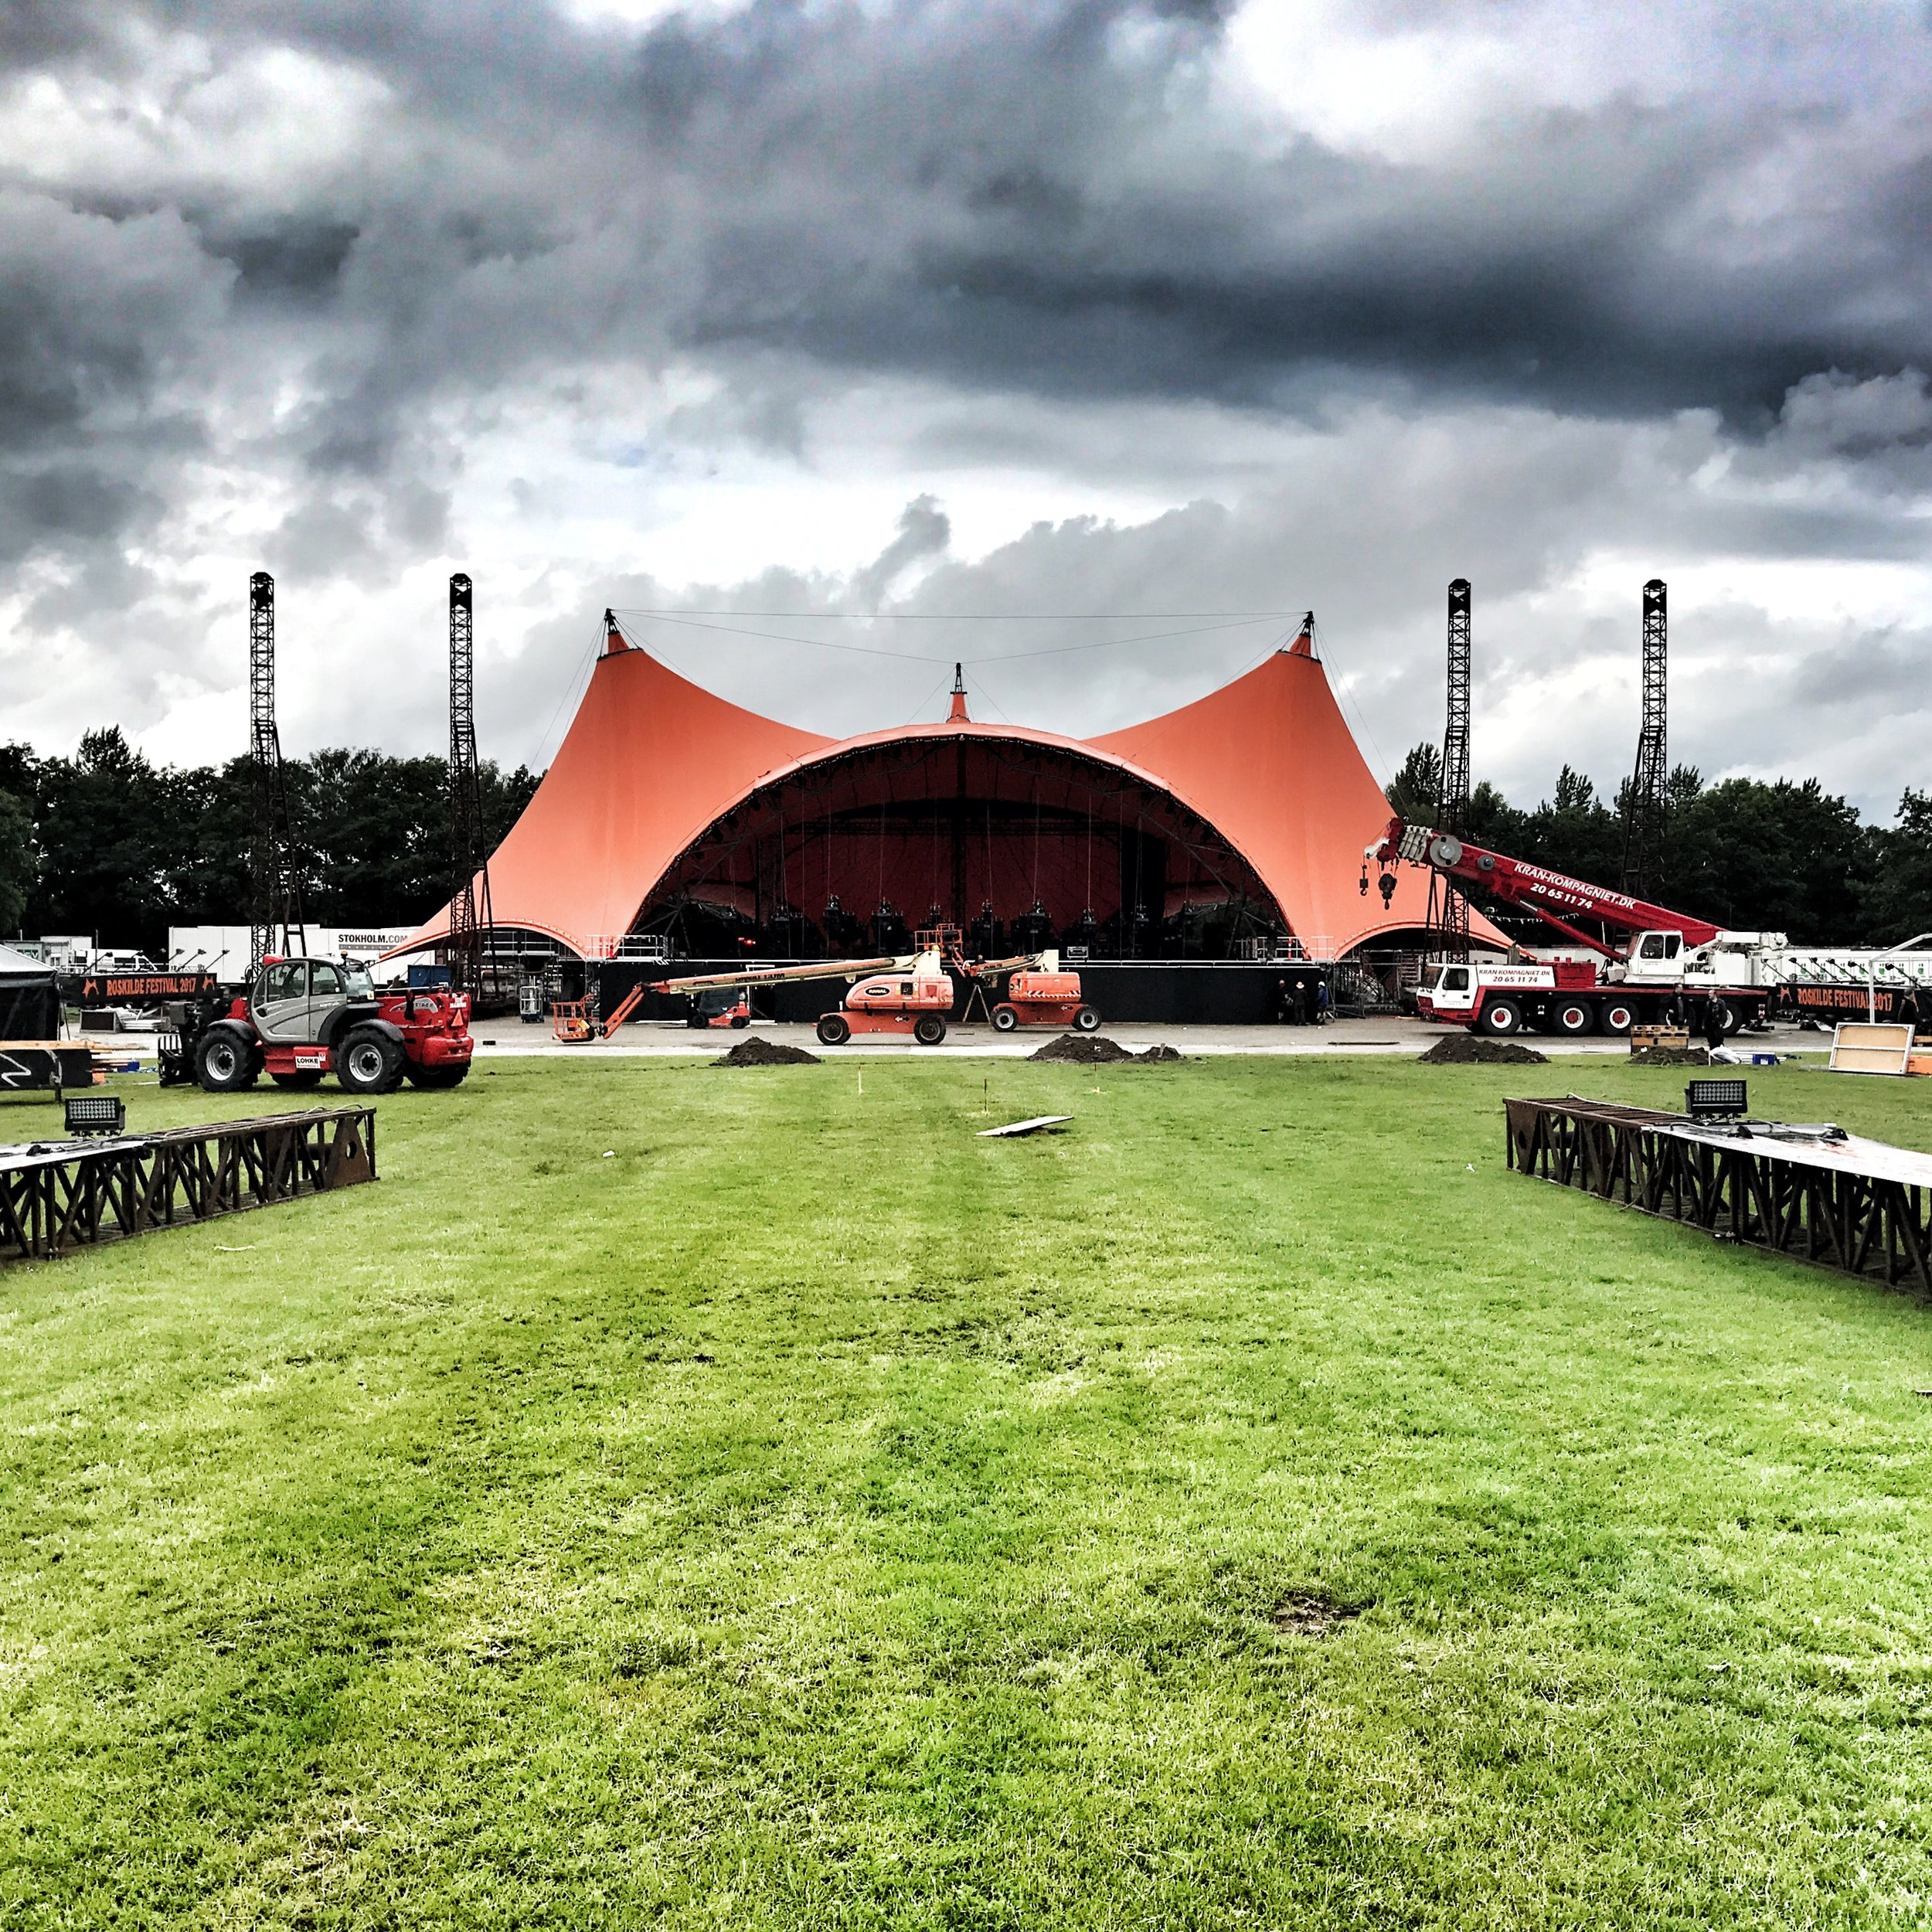 The Orange Stage, the center of Roskilde Festival a few days before opening.